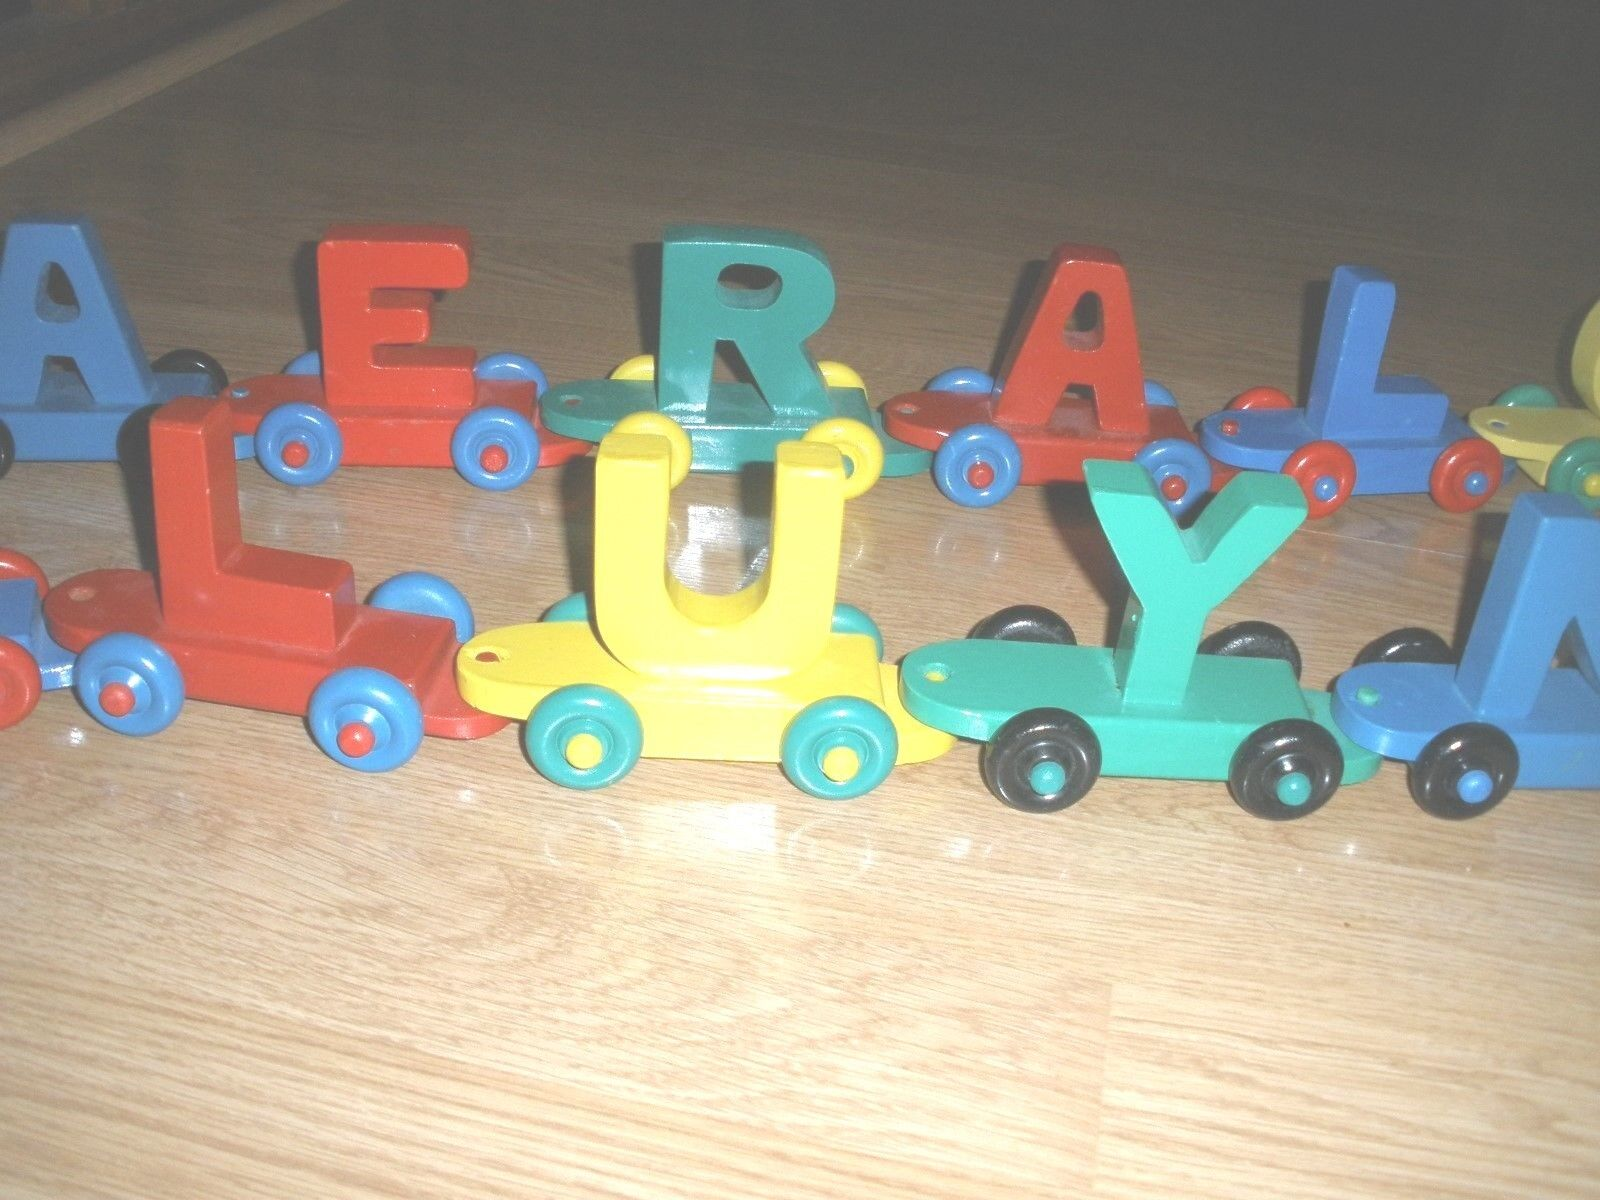 VTG Wooden Train Train Train LETTER Set 16 PCS - Train Toys Set Includes 2 Engines-Toy Train 31be1f